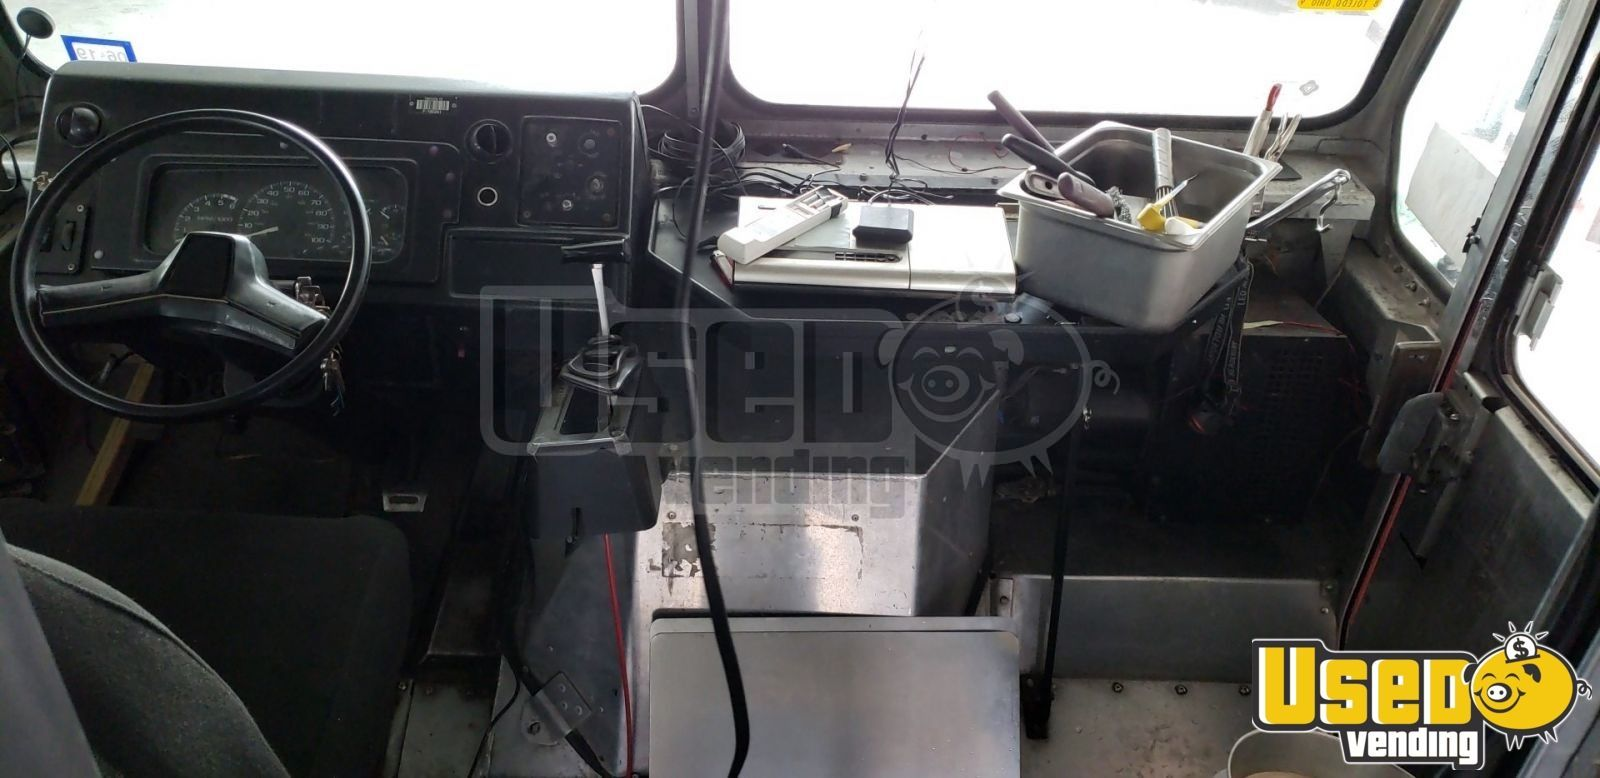 2000 Chevy Workhoarse All-purpose Food Truck Prep Station Cooler Texas Gas Engine for Sale - 14